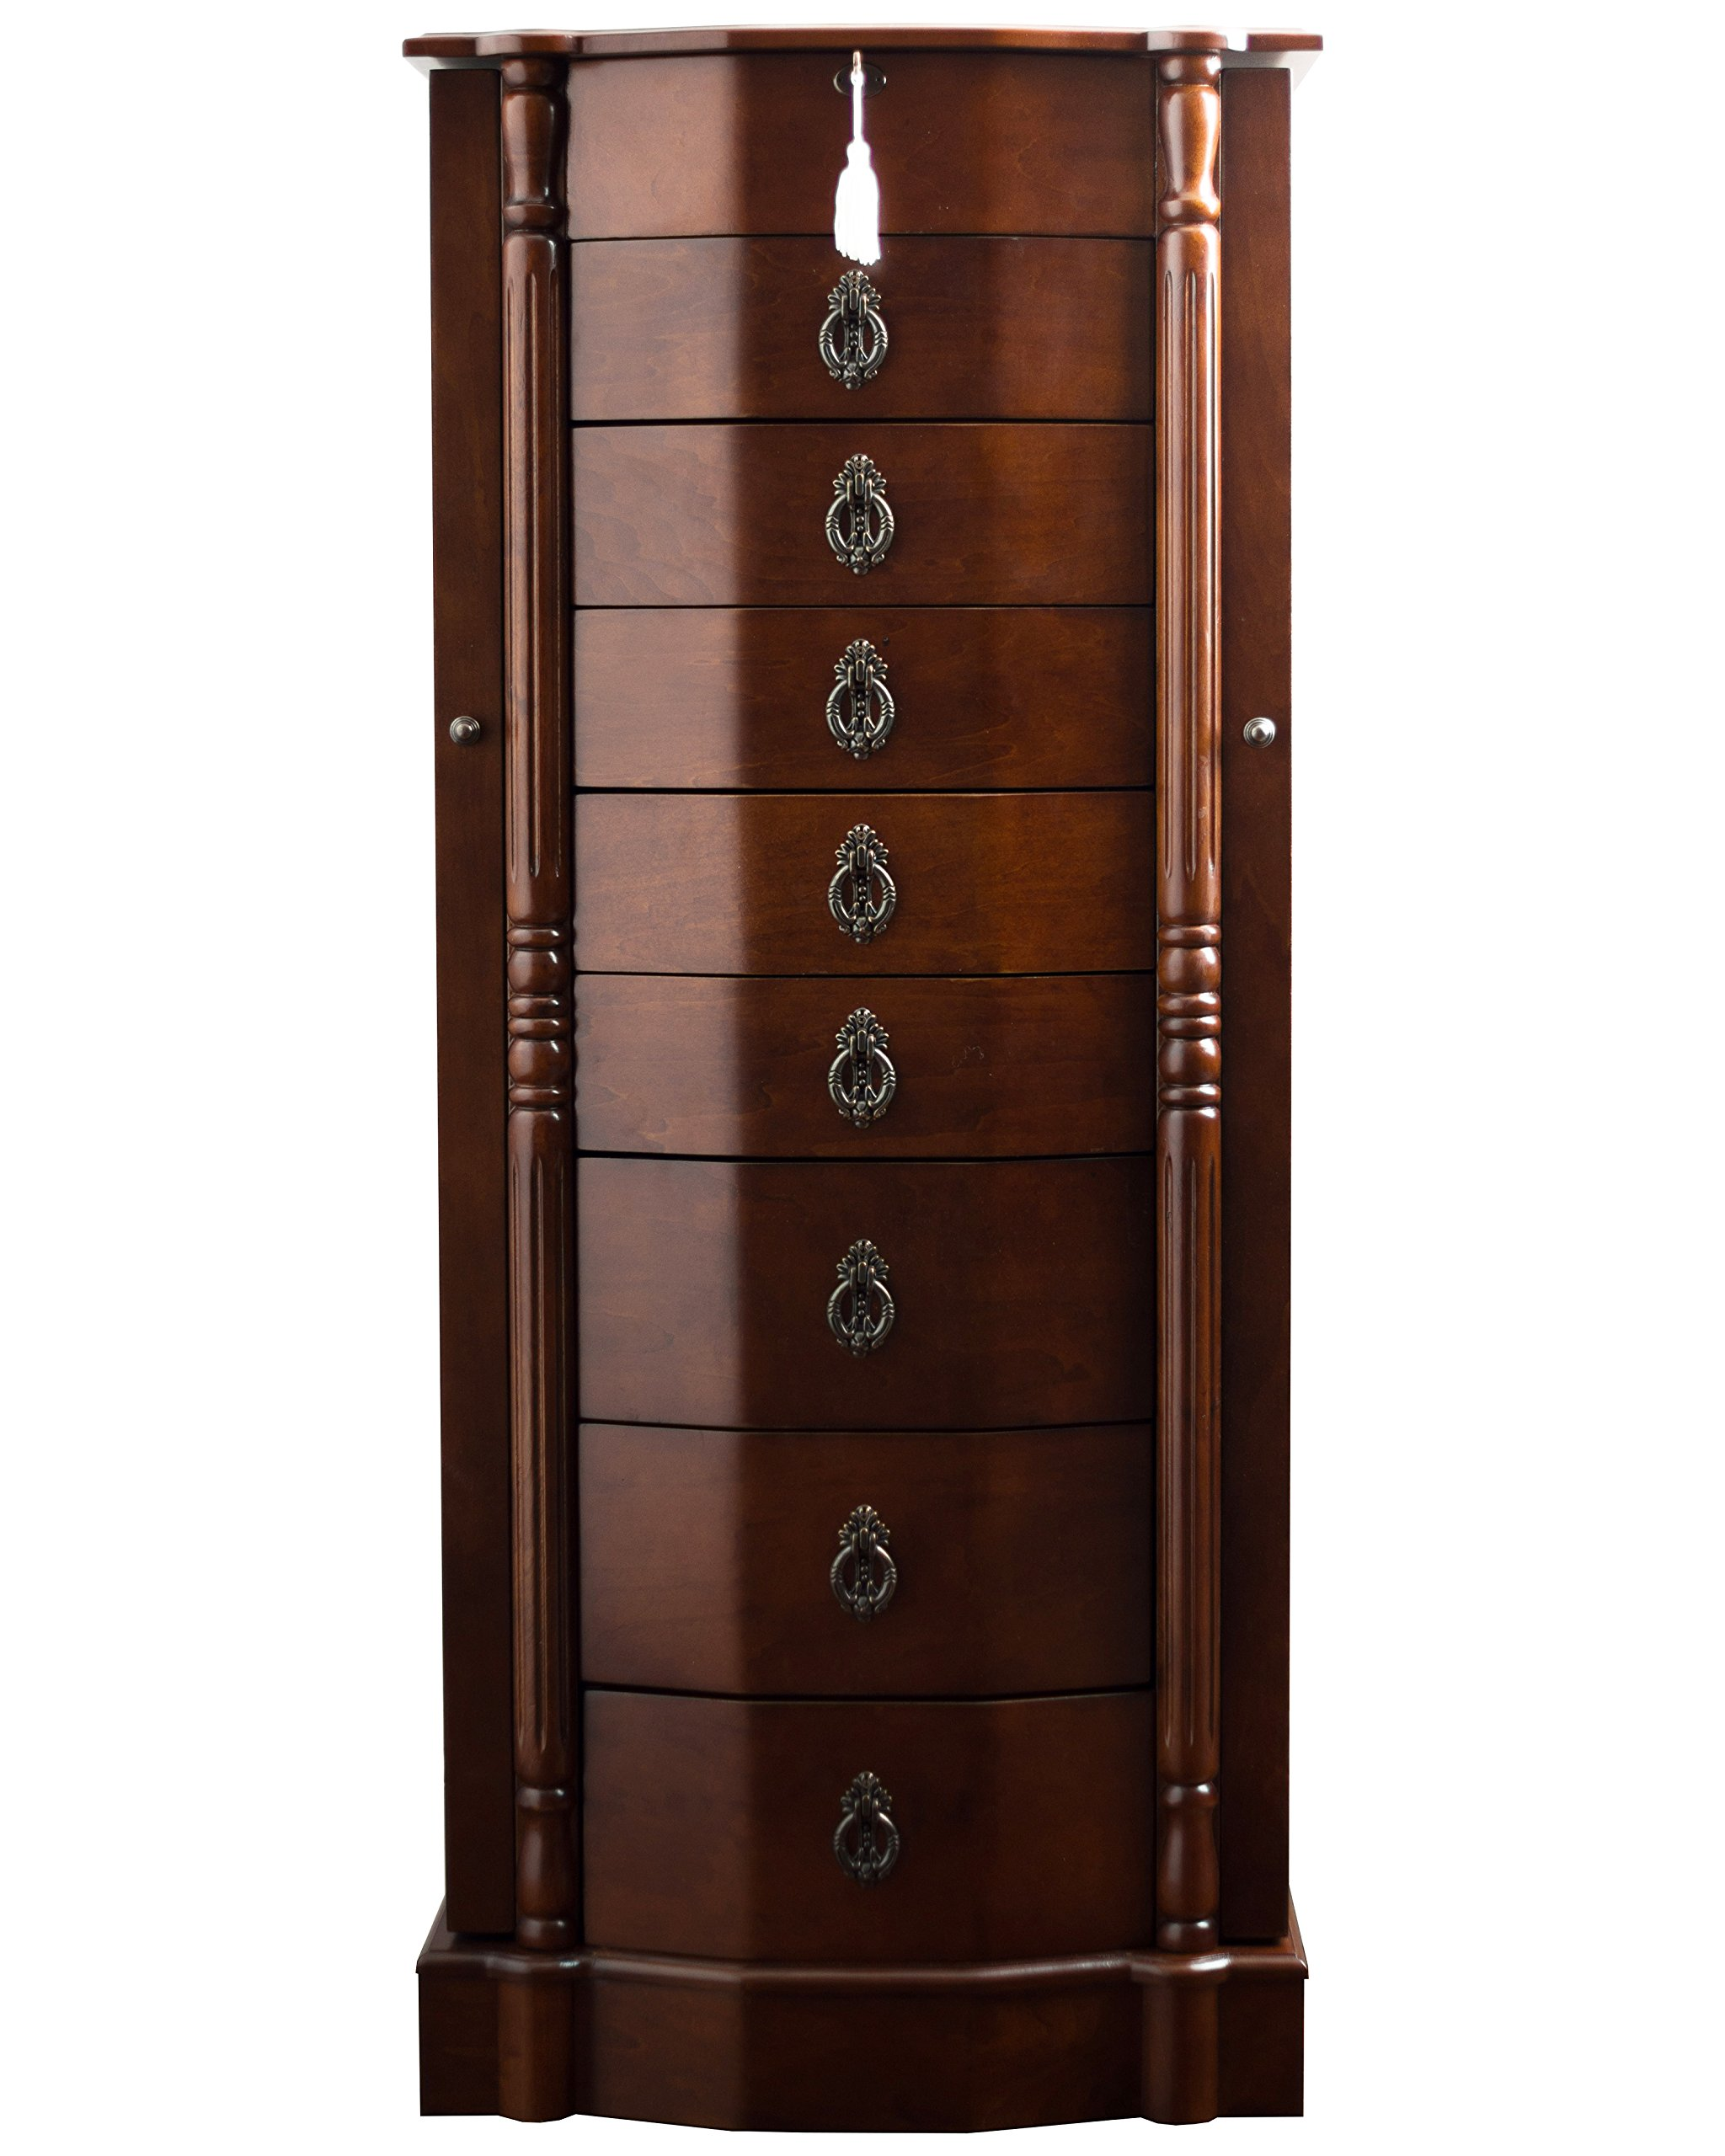 armoire pcr in reviews hives l hutch rated customer armoires image best amazon product and com honey robyn helpful jewelry